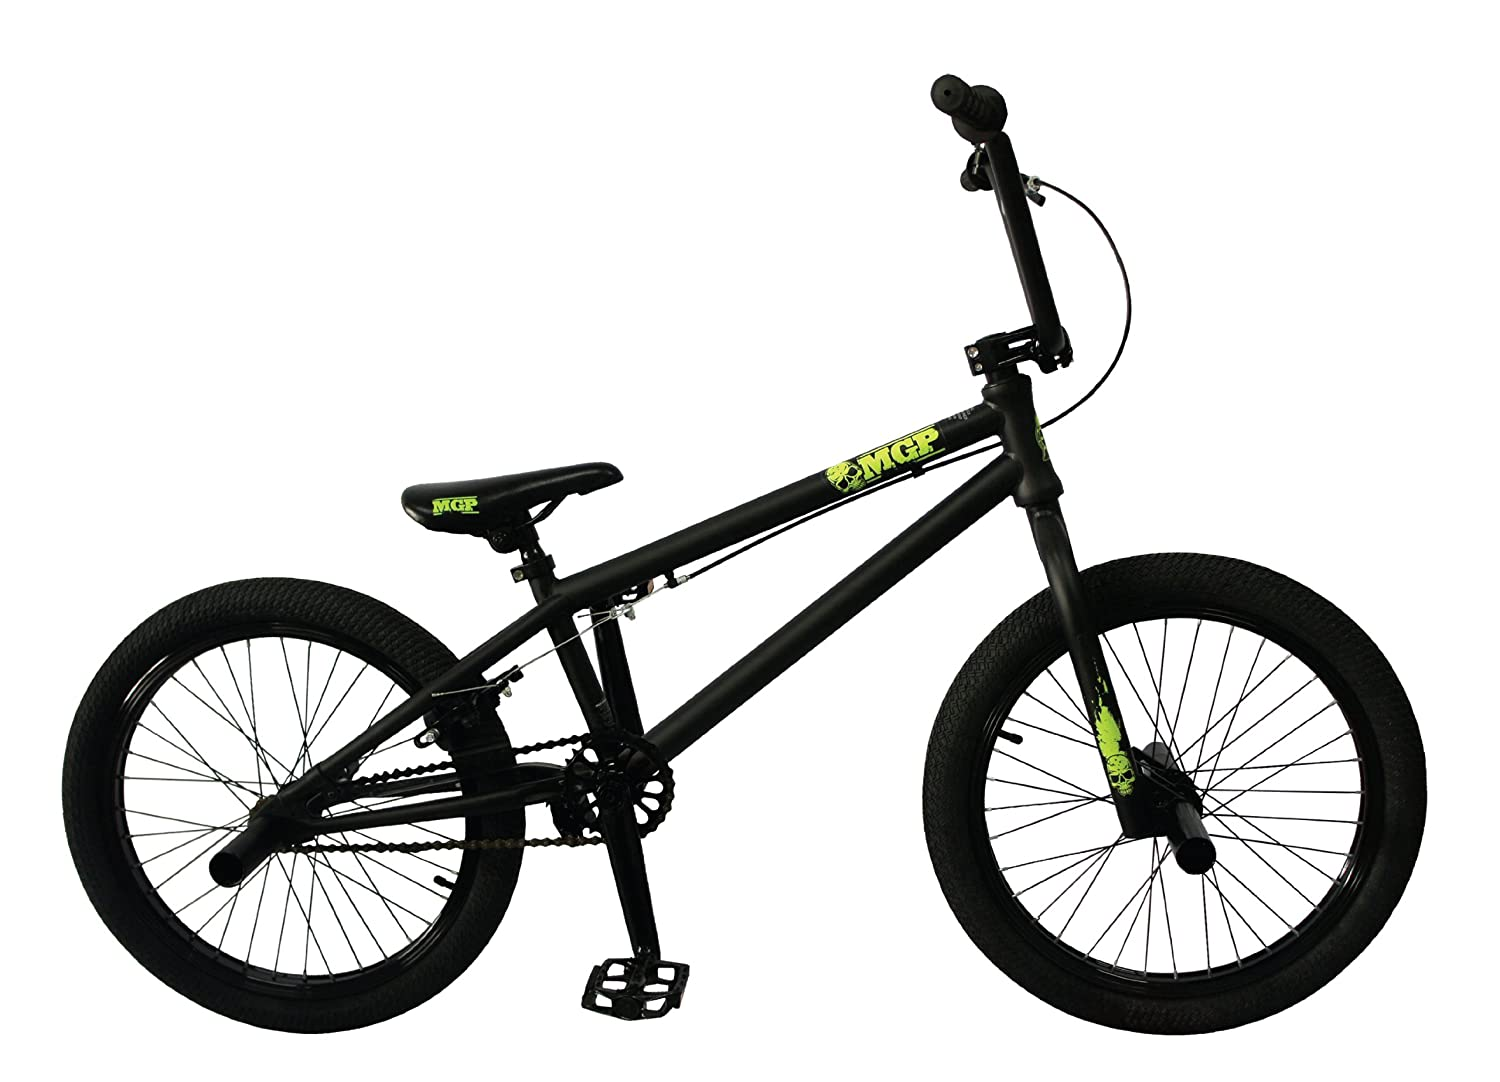 Bmx Bikes At Academy Inch Boost BMX Bike